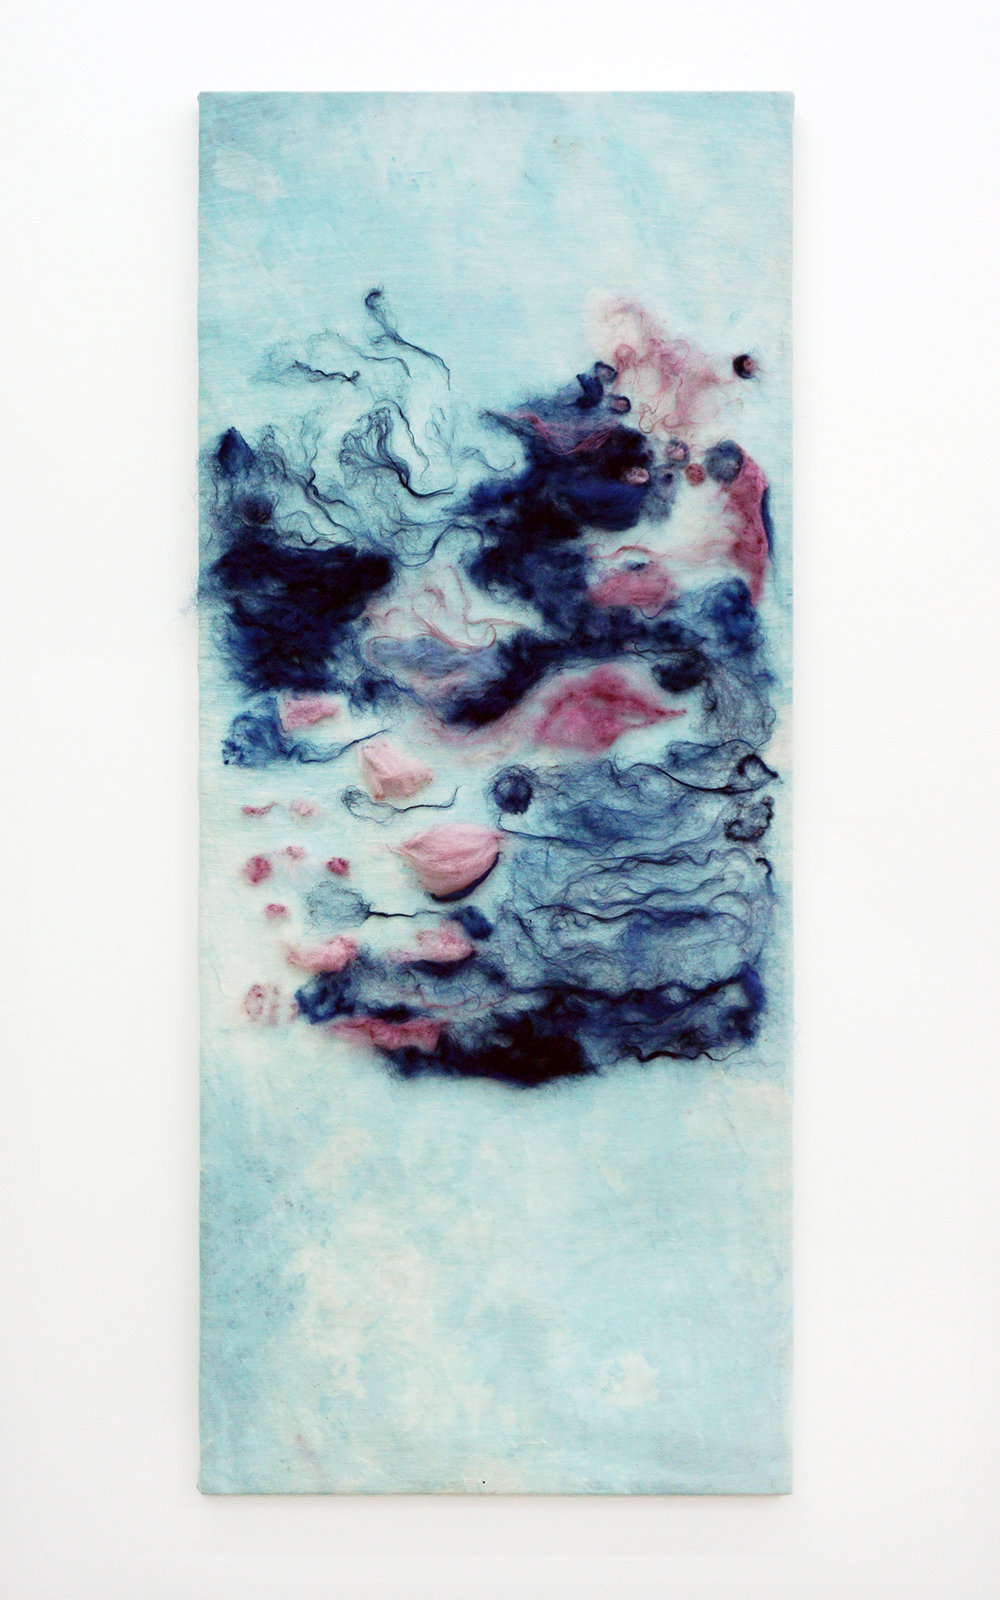 Julie Lænkholm, Untitled 9, 2018 (Japanese indigo, central American indigo, Cochineal, wool, iron, and silk, 175x75cm).